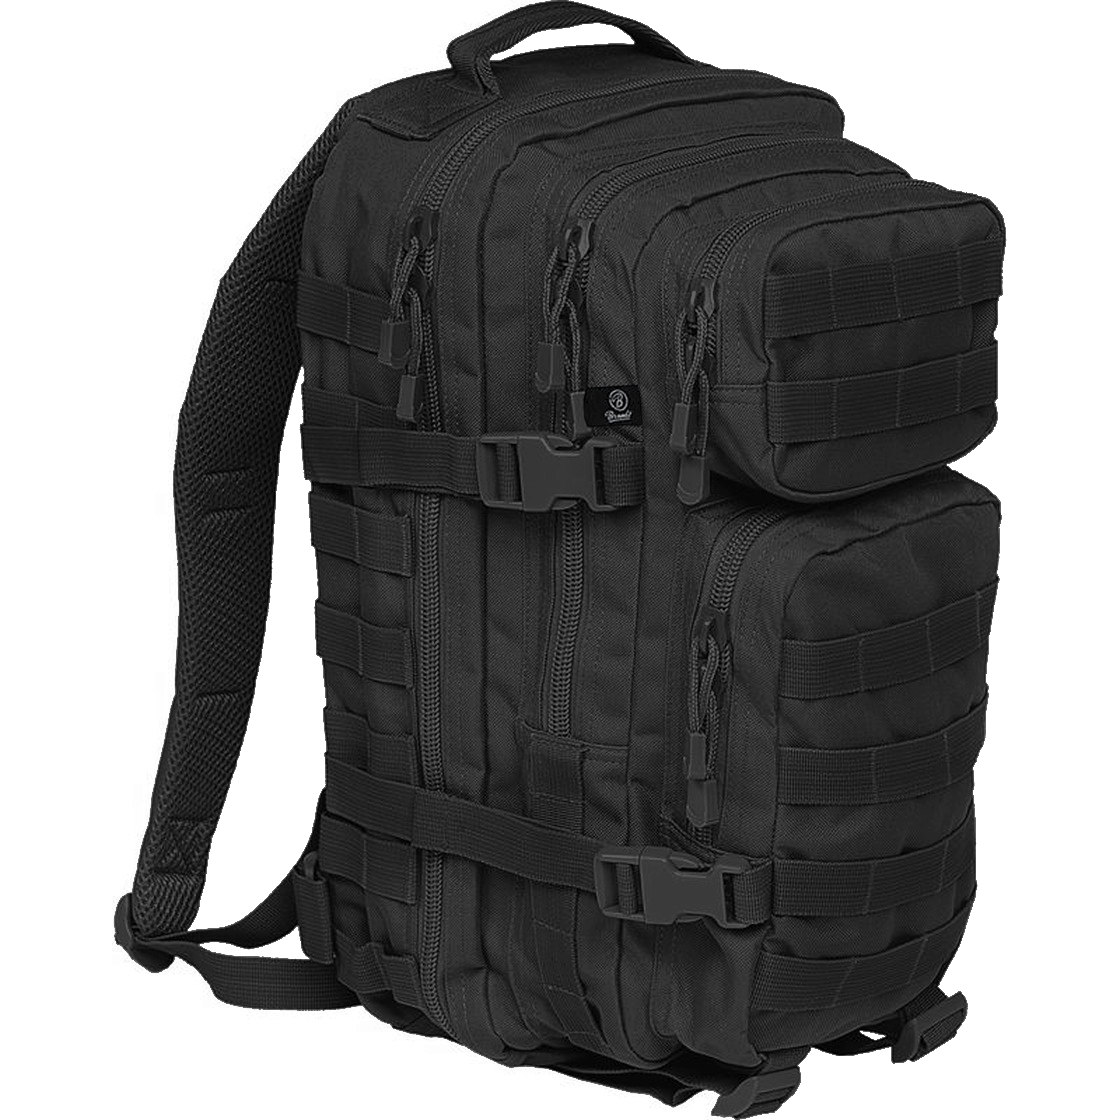 BackpackS-black1